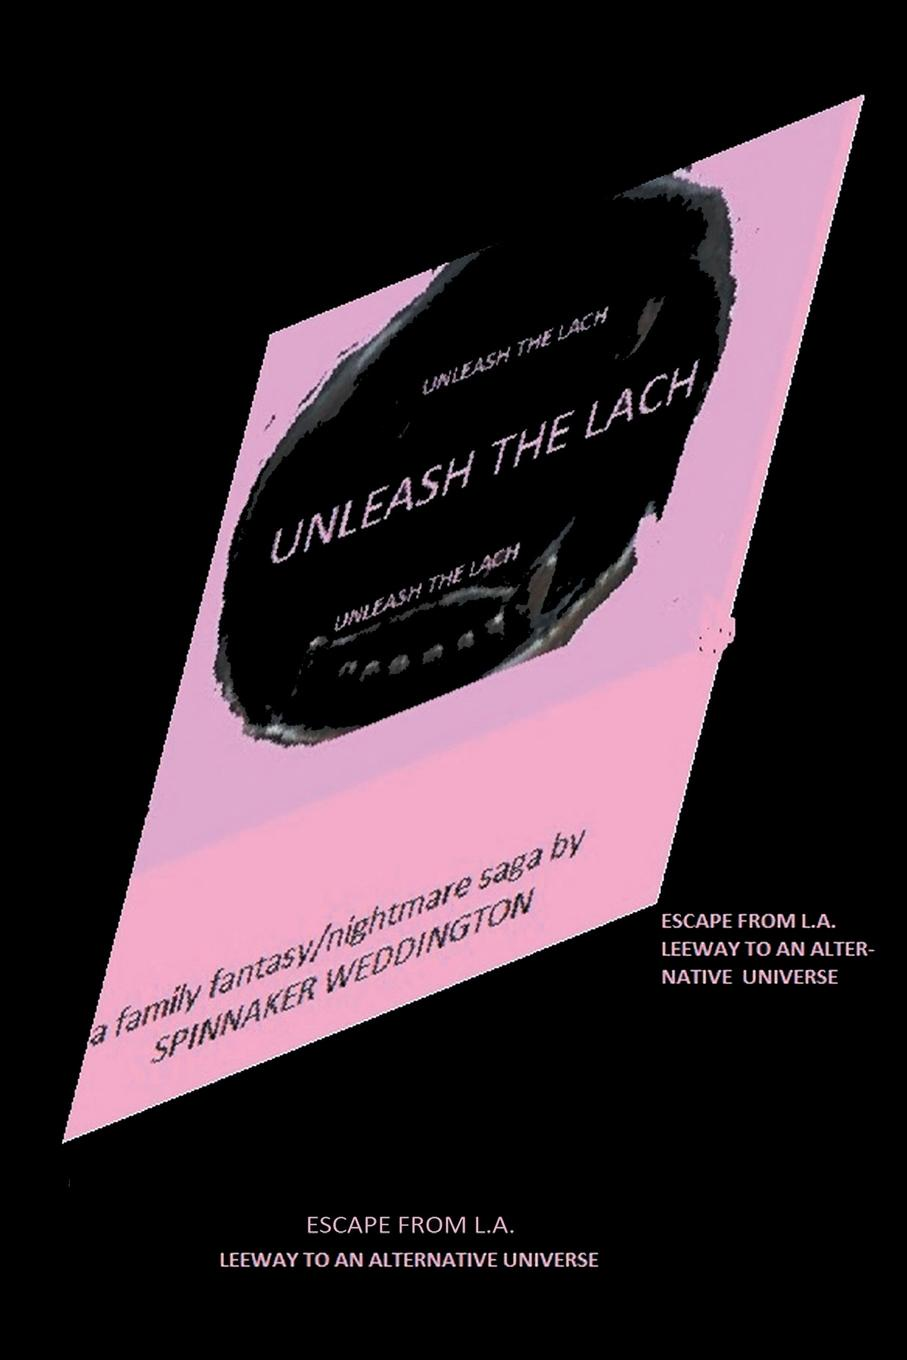 Фото - Spinnaker Weddington Unleash the Lach. Escape from L.A. & Leeway to an Alternative Universe conceiving an alternative philosophical resources for an ecological civilization